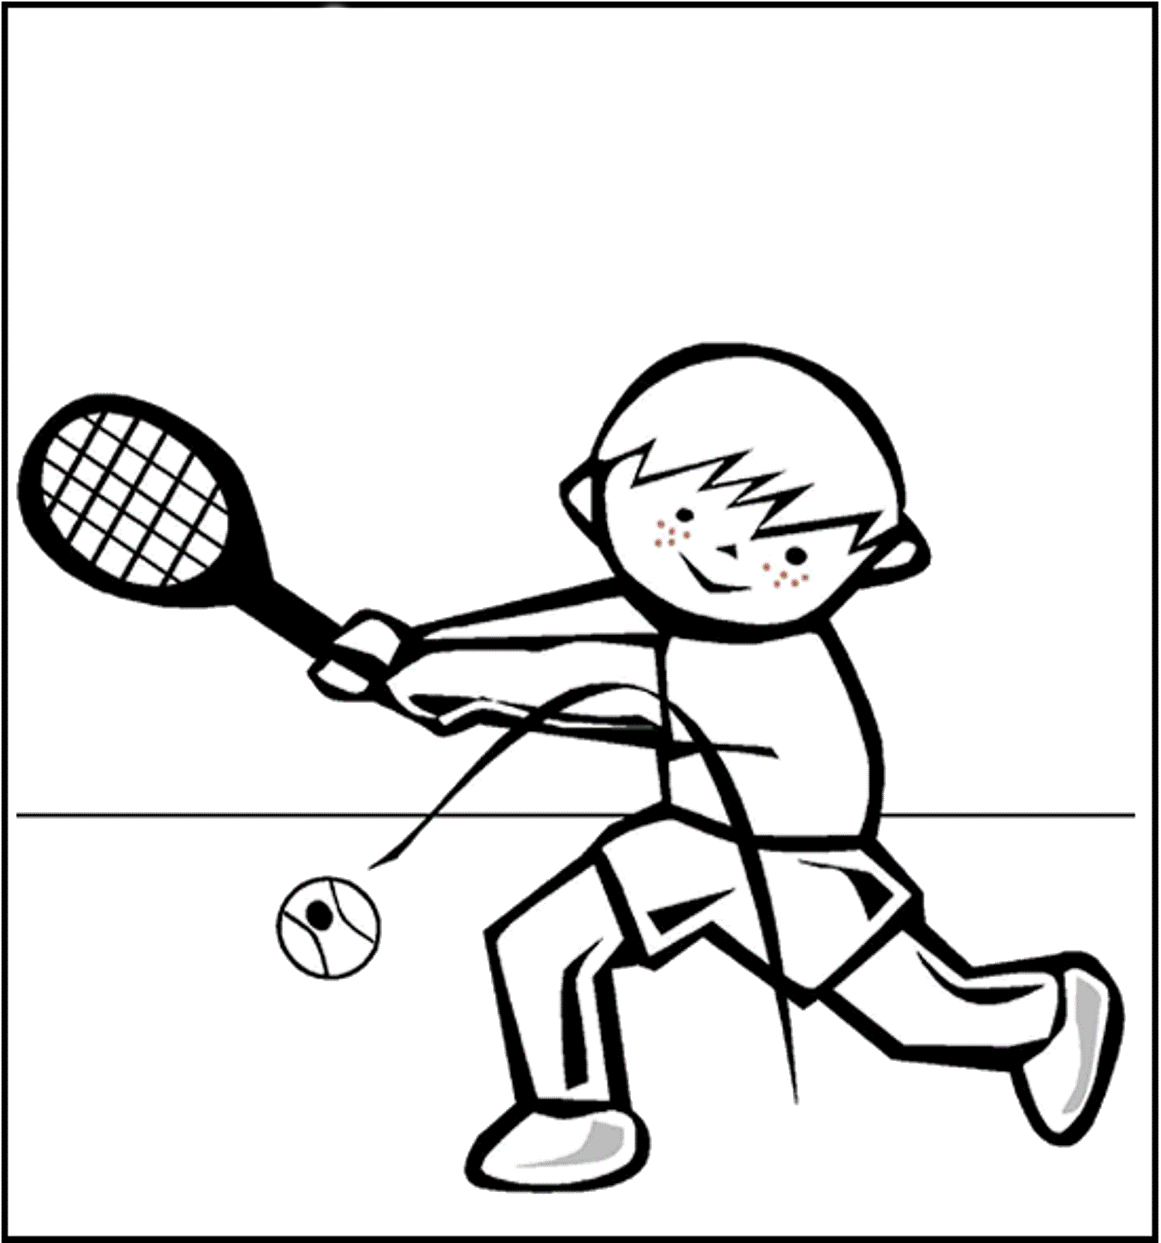 Sports Photograph Coloring Pages